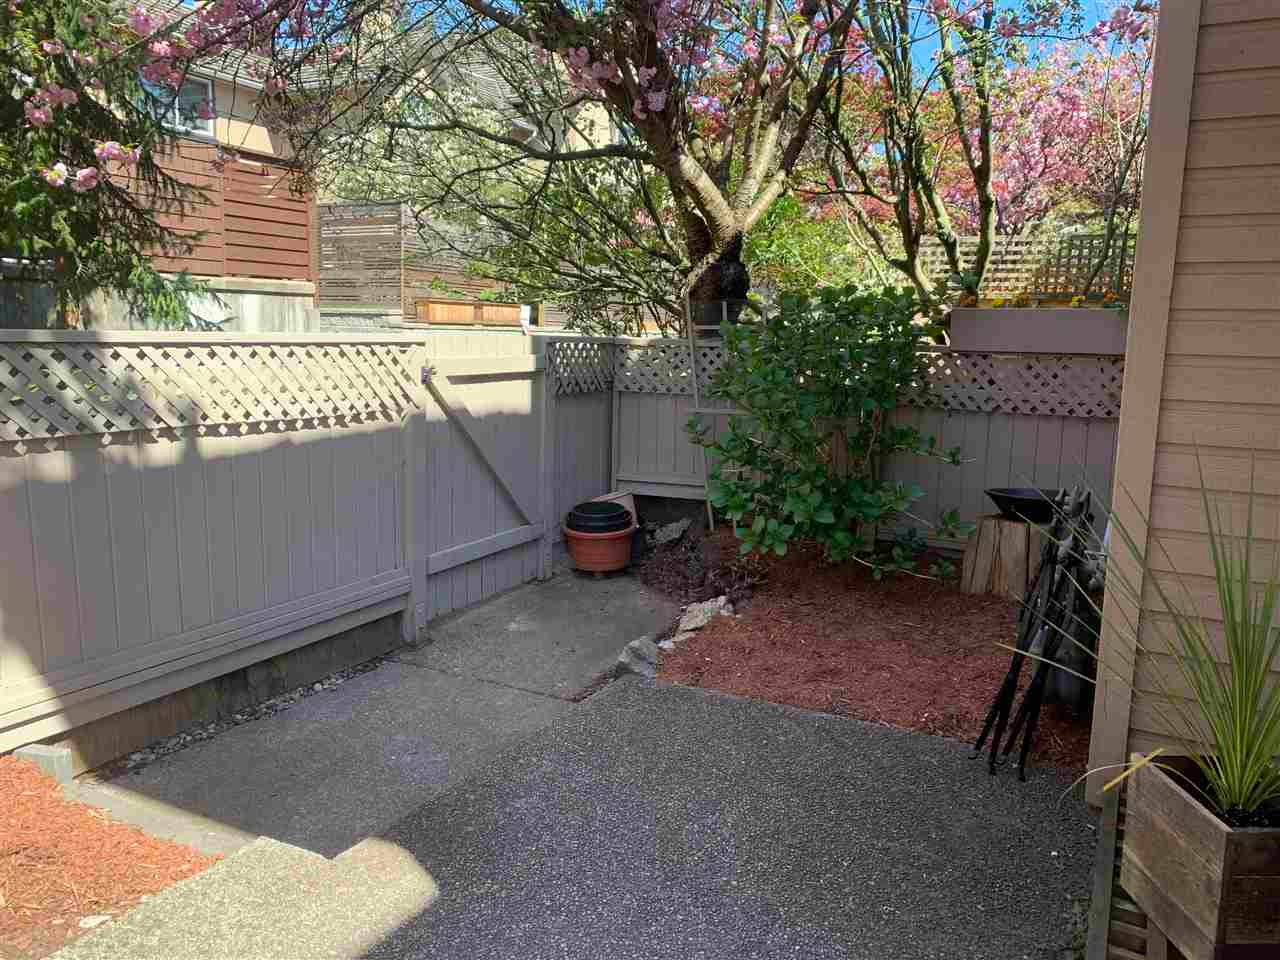 2 230 W 15TH STREET - Central Lonsdale Townhouse for sale, 3 Bedrooms (R2572749) - #2